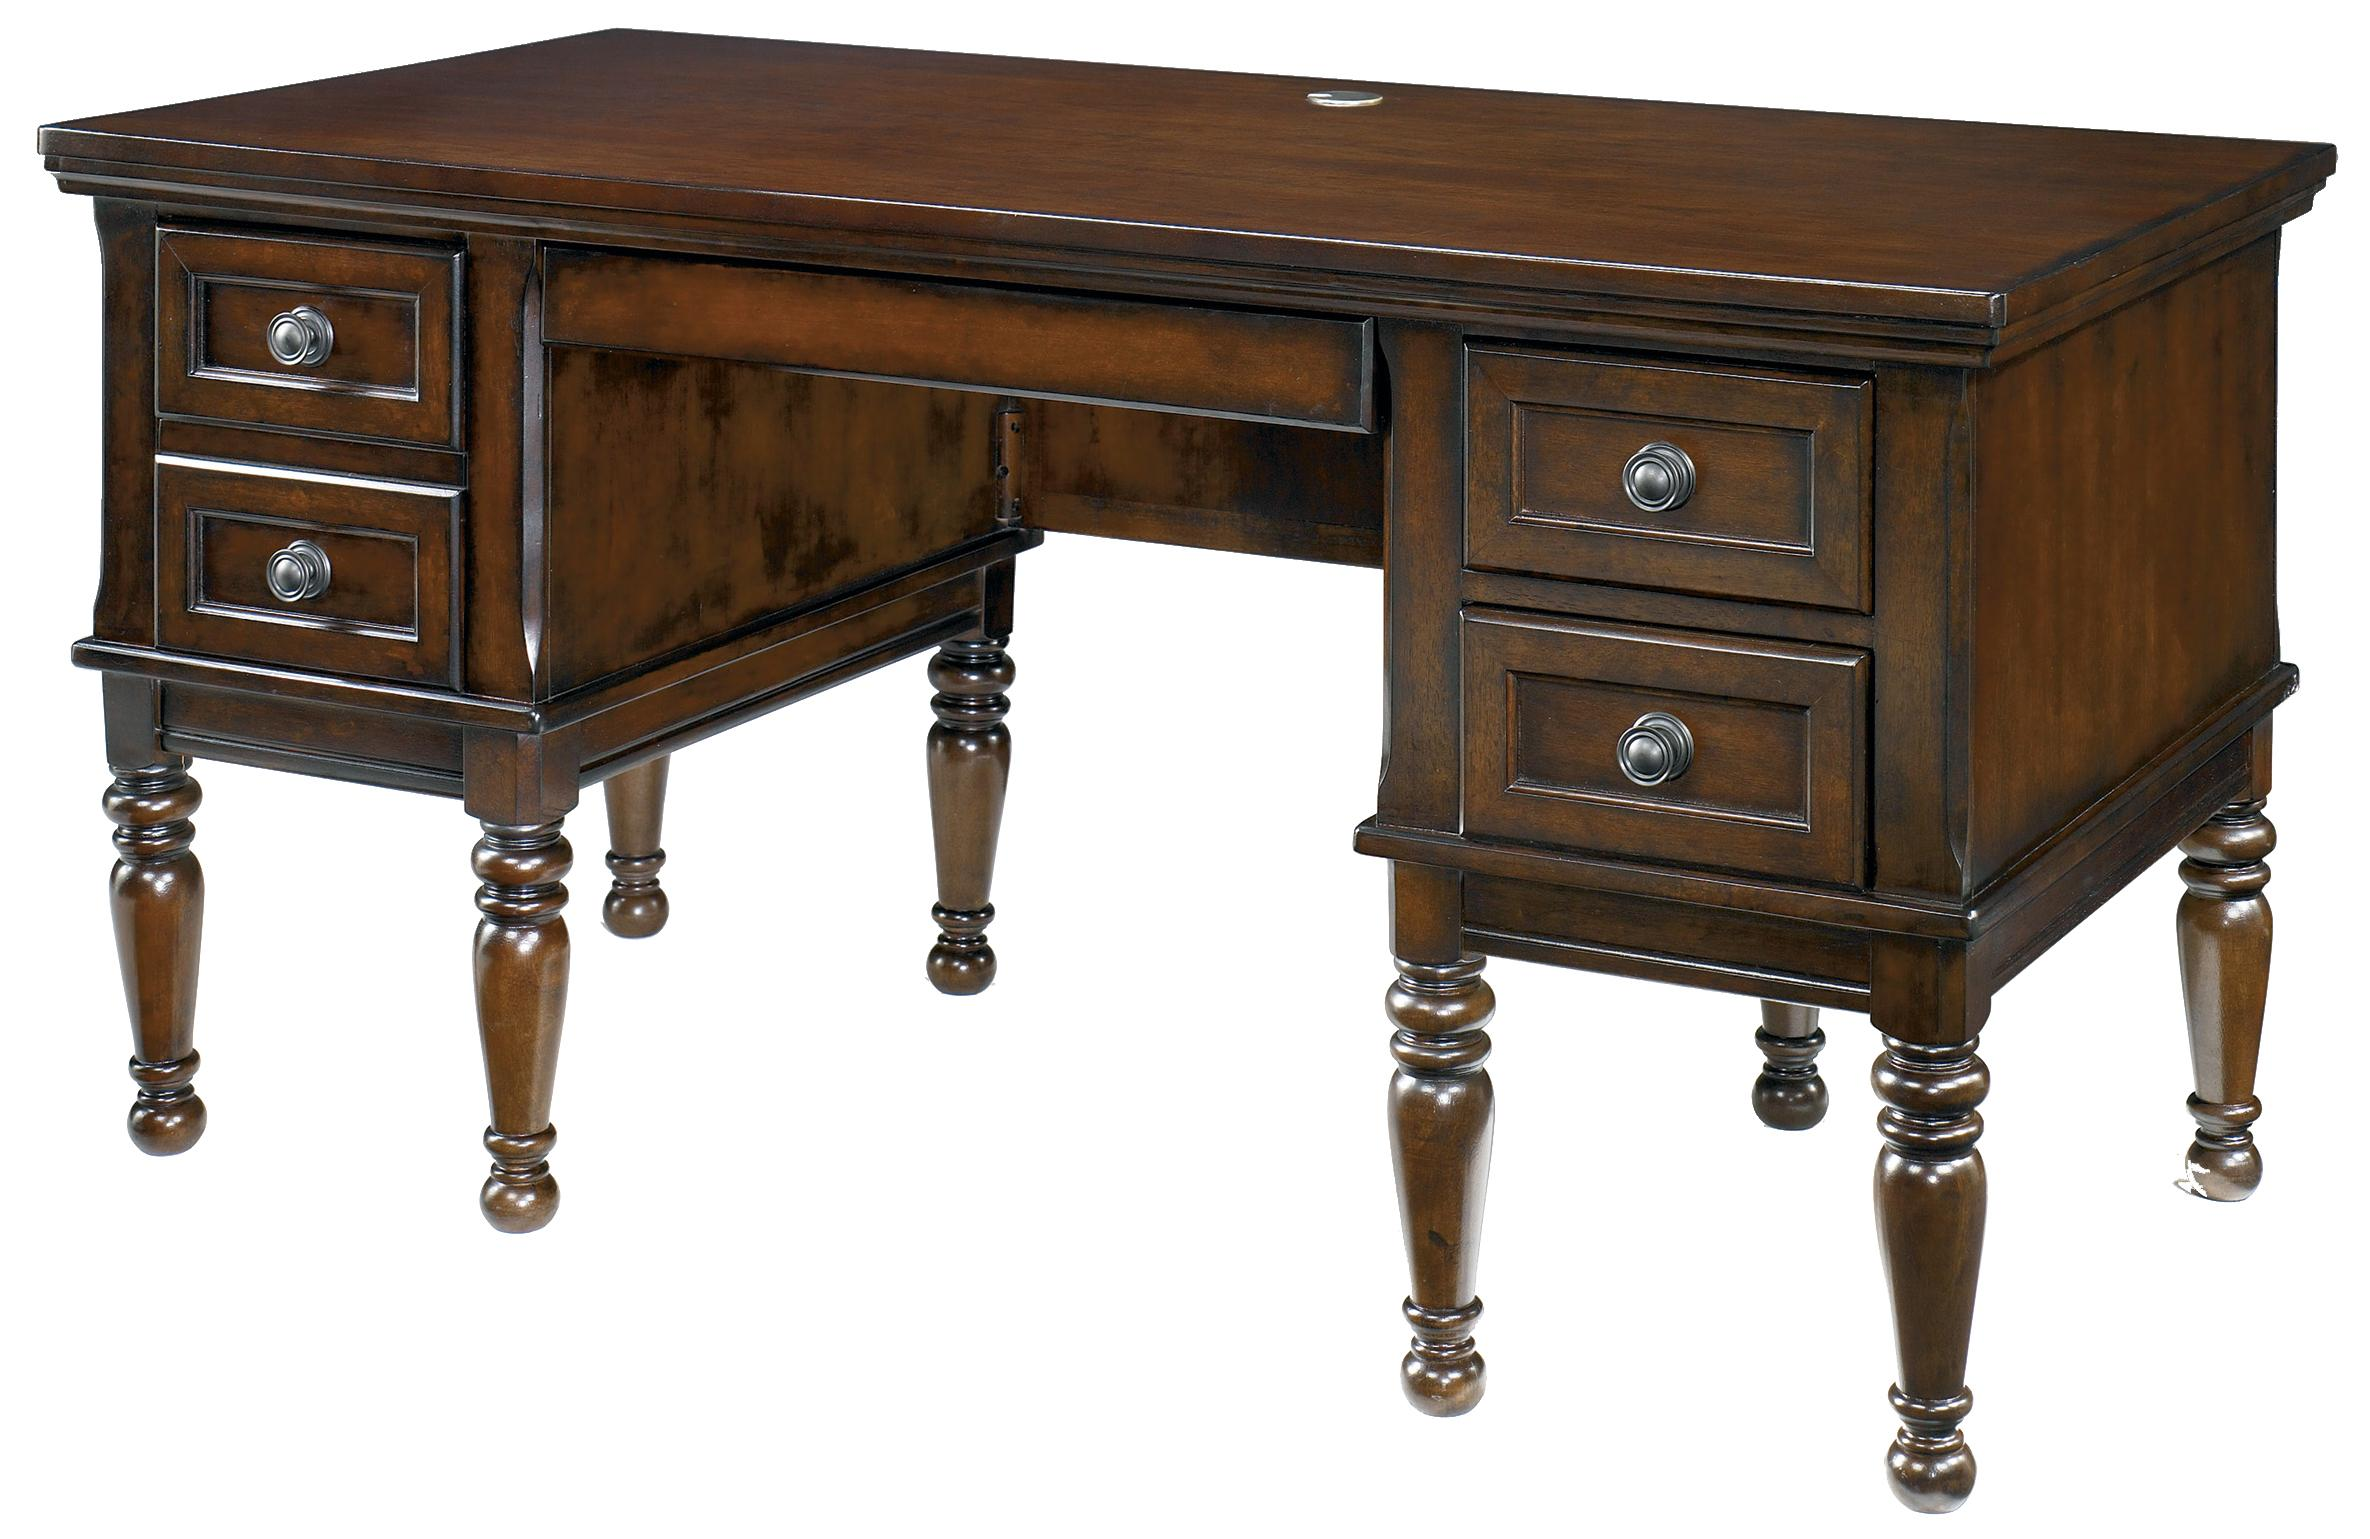 Signature Design by Ashley Porter Storage Leg Desk - Item Number: H697-26